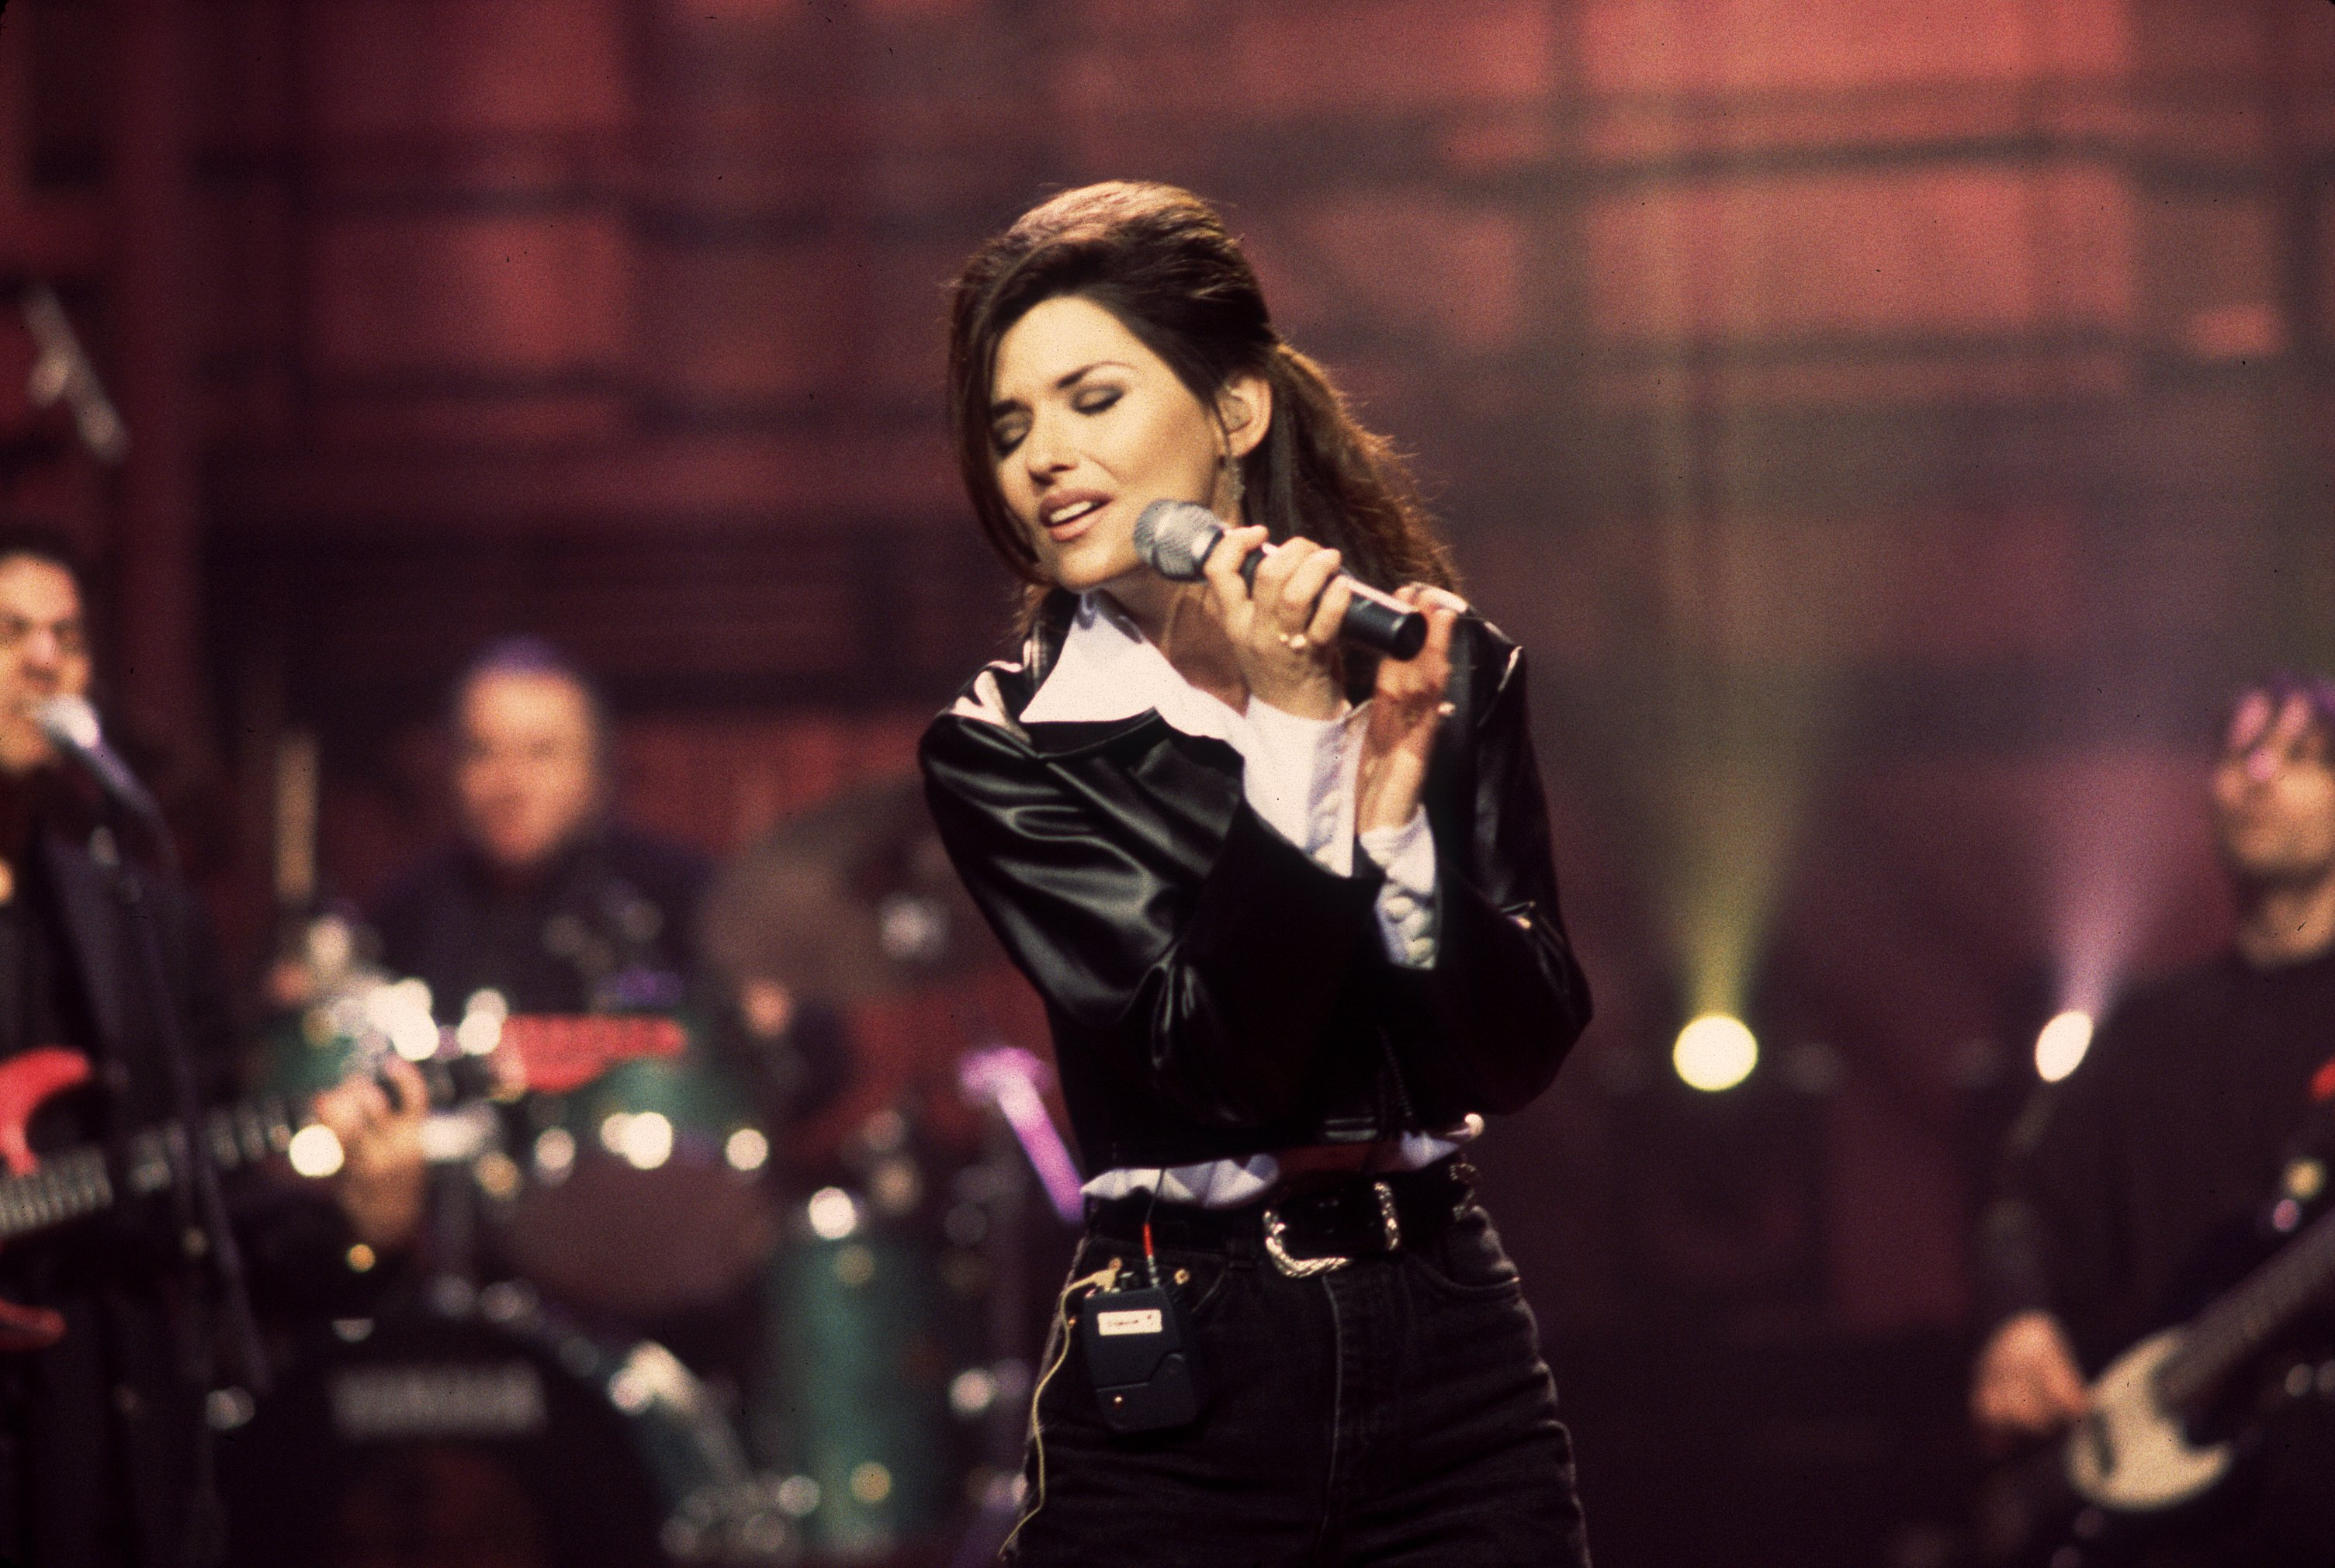 """Shania Twain performing a soundcheck for """"The David Letterman Show"""" in New York, 1996   Photo: Getty Images"""